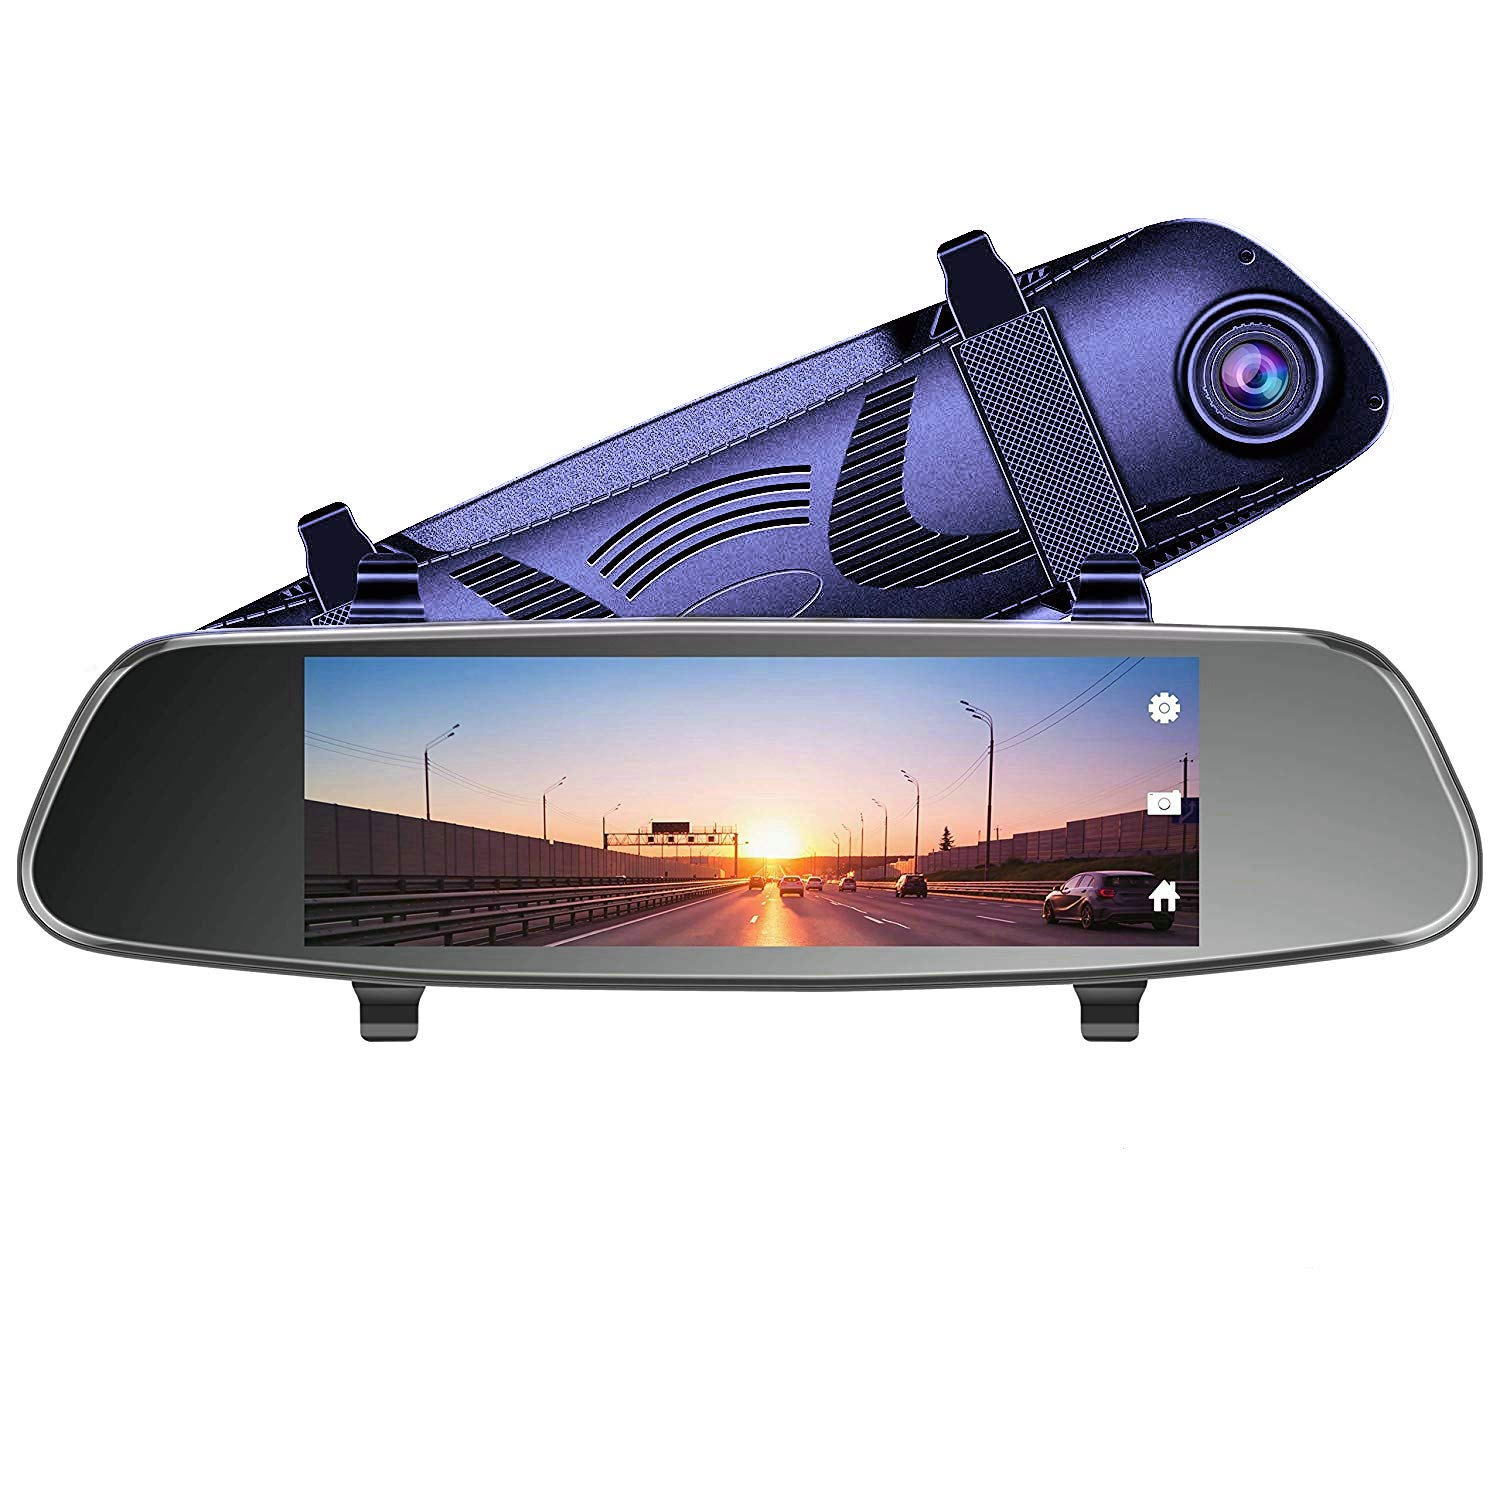 AUKEY Dash Cam Mirror 6.8'' LCD Touchscreen Car Camera with Backup Camera and Parking Mode 1080p 170° Front Camera and 720p 160° Water-Resistant Rear Camera-Blue